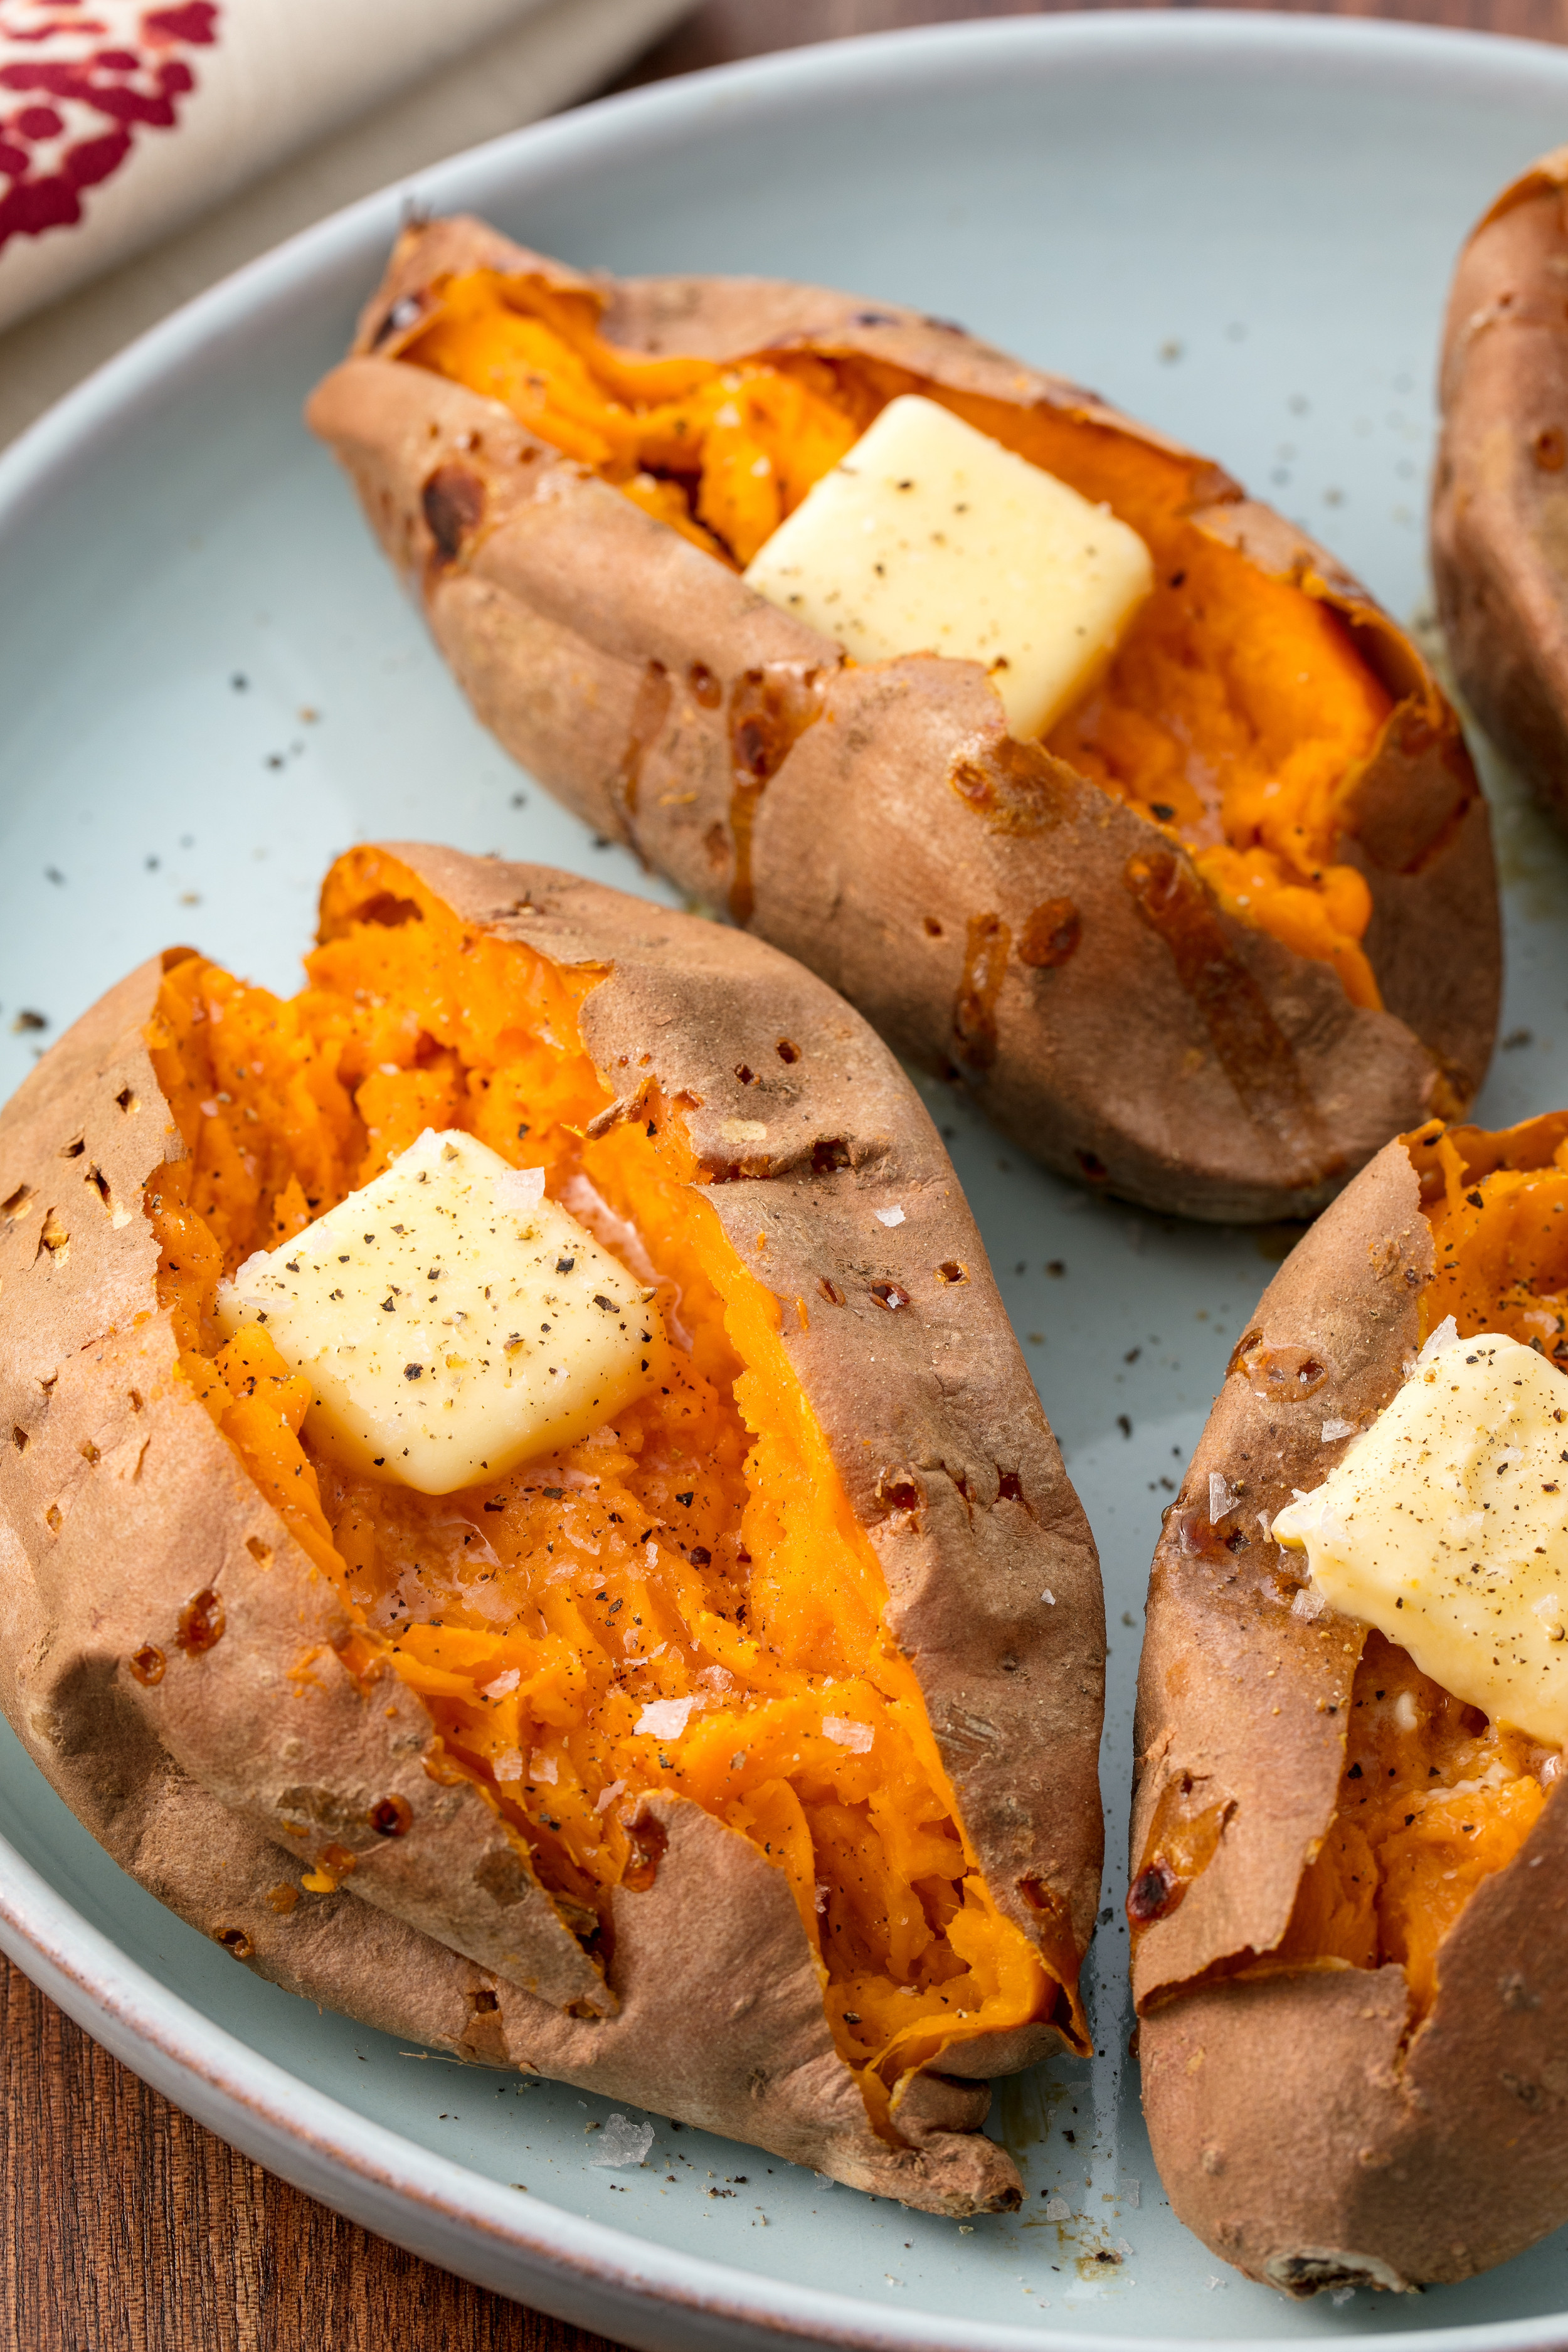 How To Cook A Sweet Potato In The Oven  30 Best Baked Potato Recipes Fully Loaded Baked